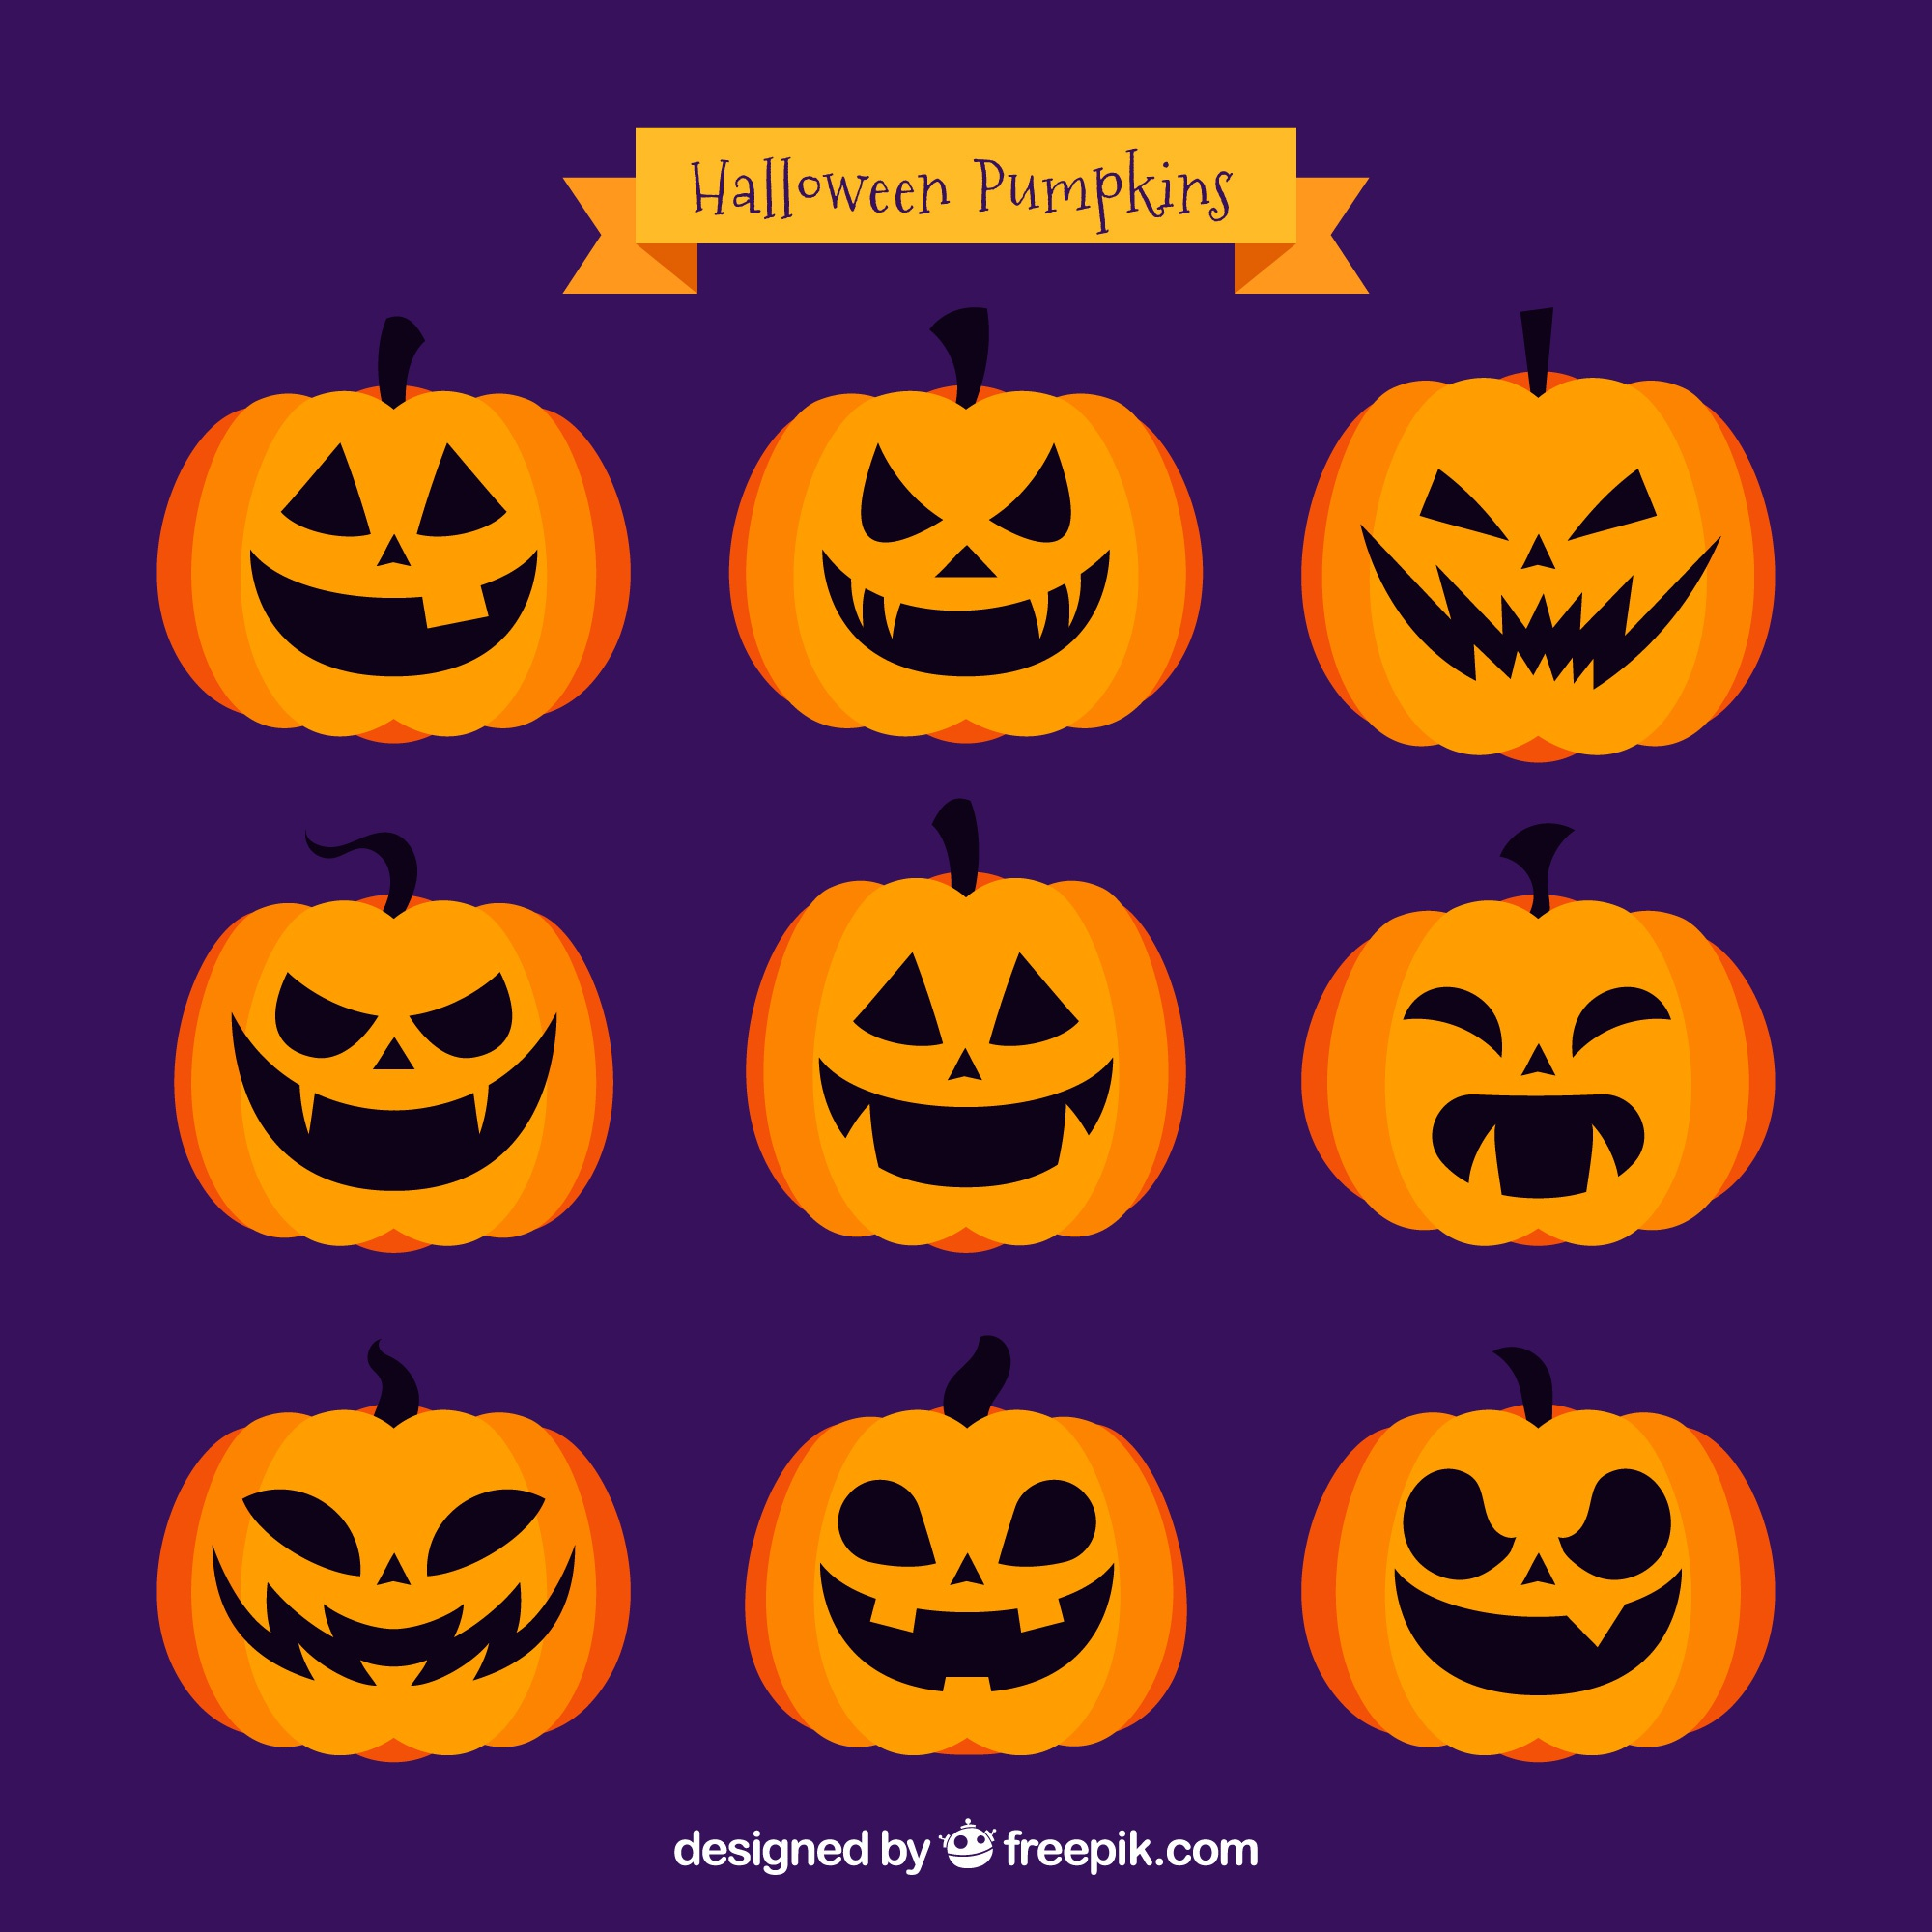 Different emotional expressions of jackolantern